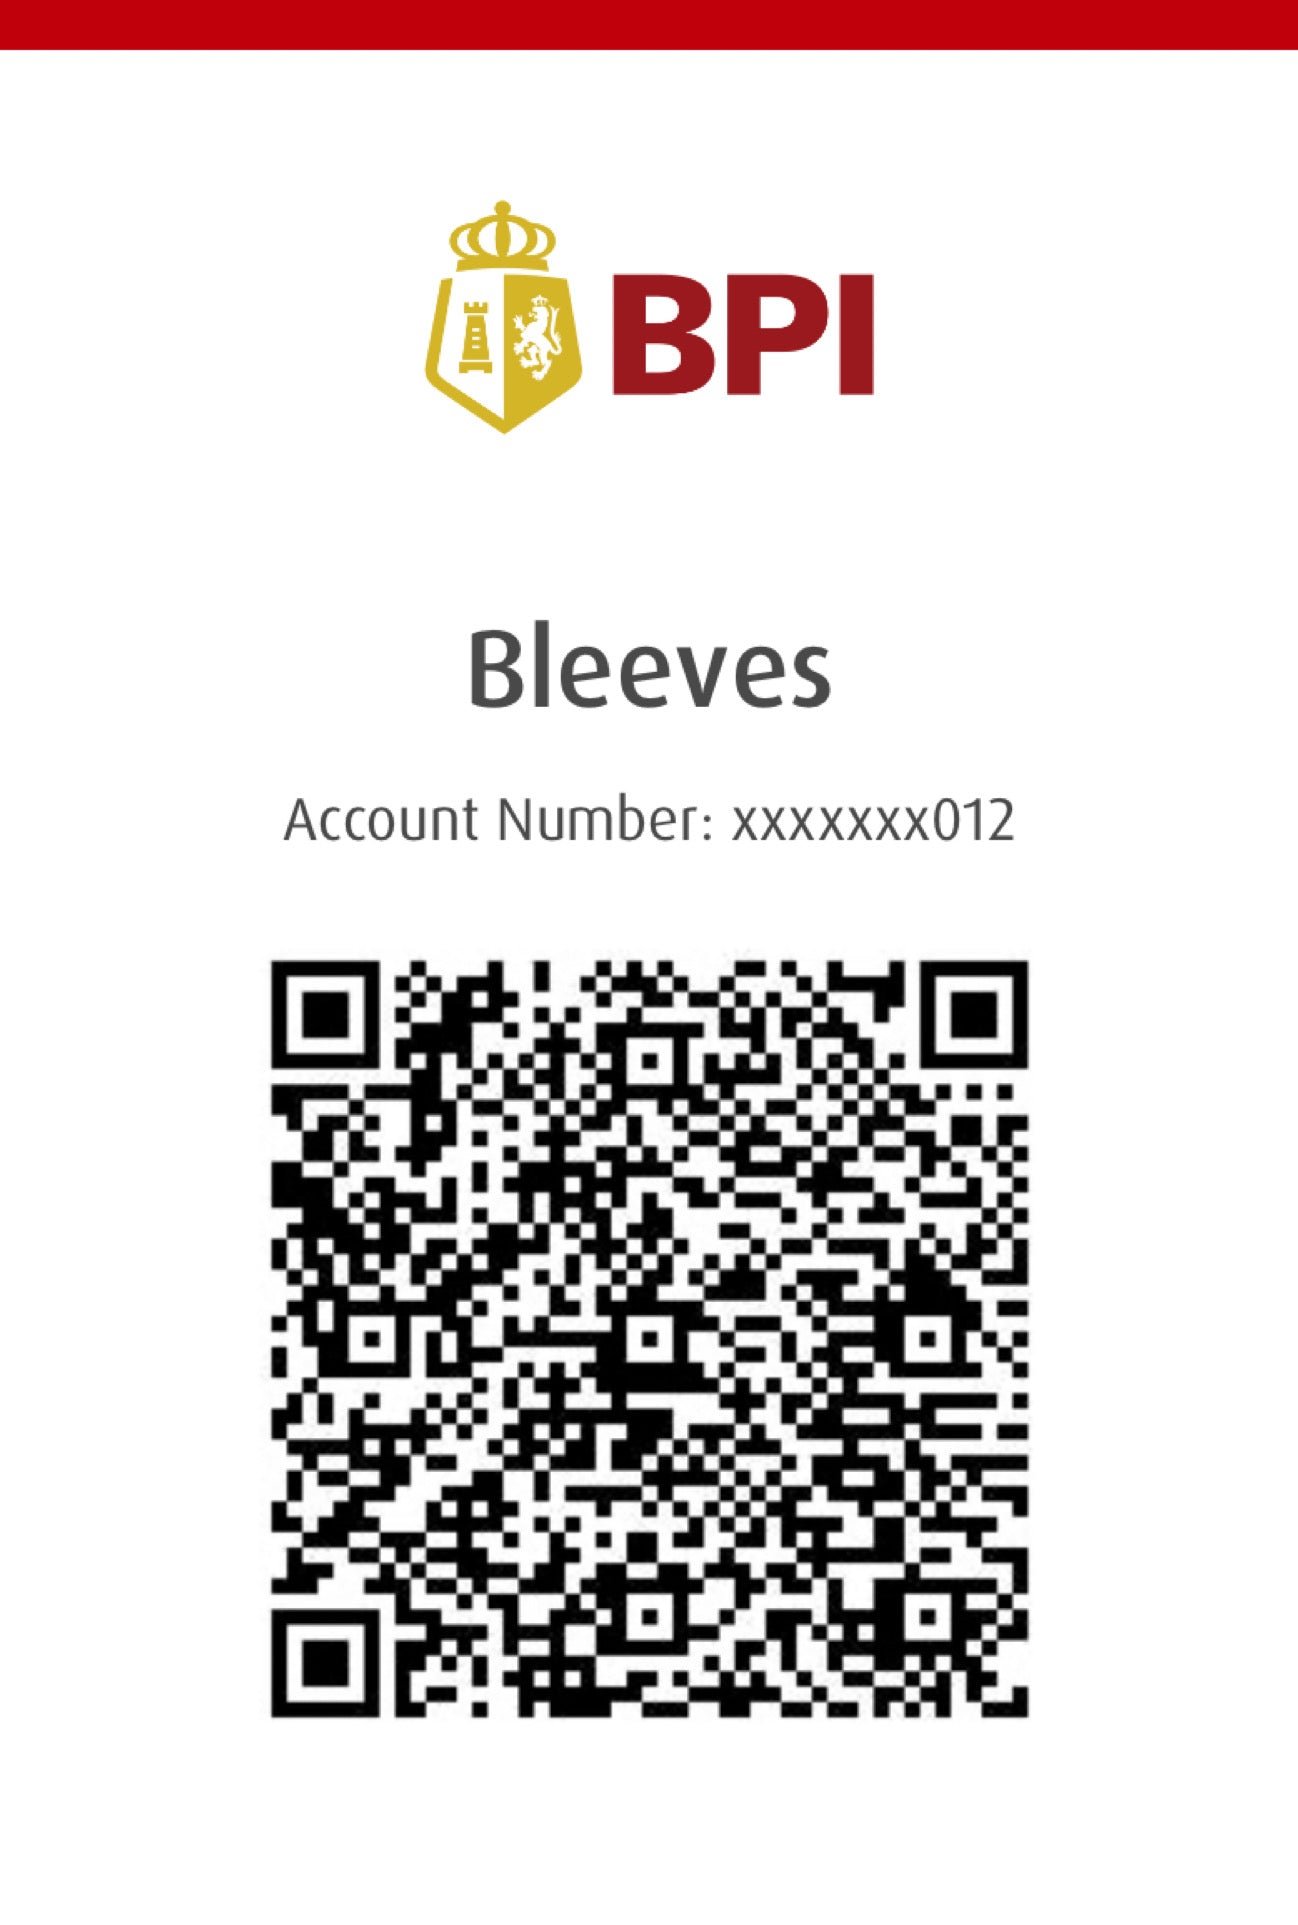 BPI QR Code - Bleeves | Wearable Blanket with Sleeves